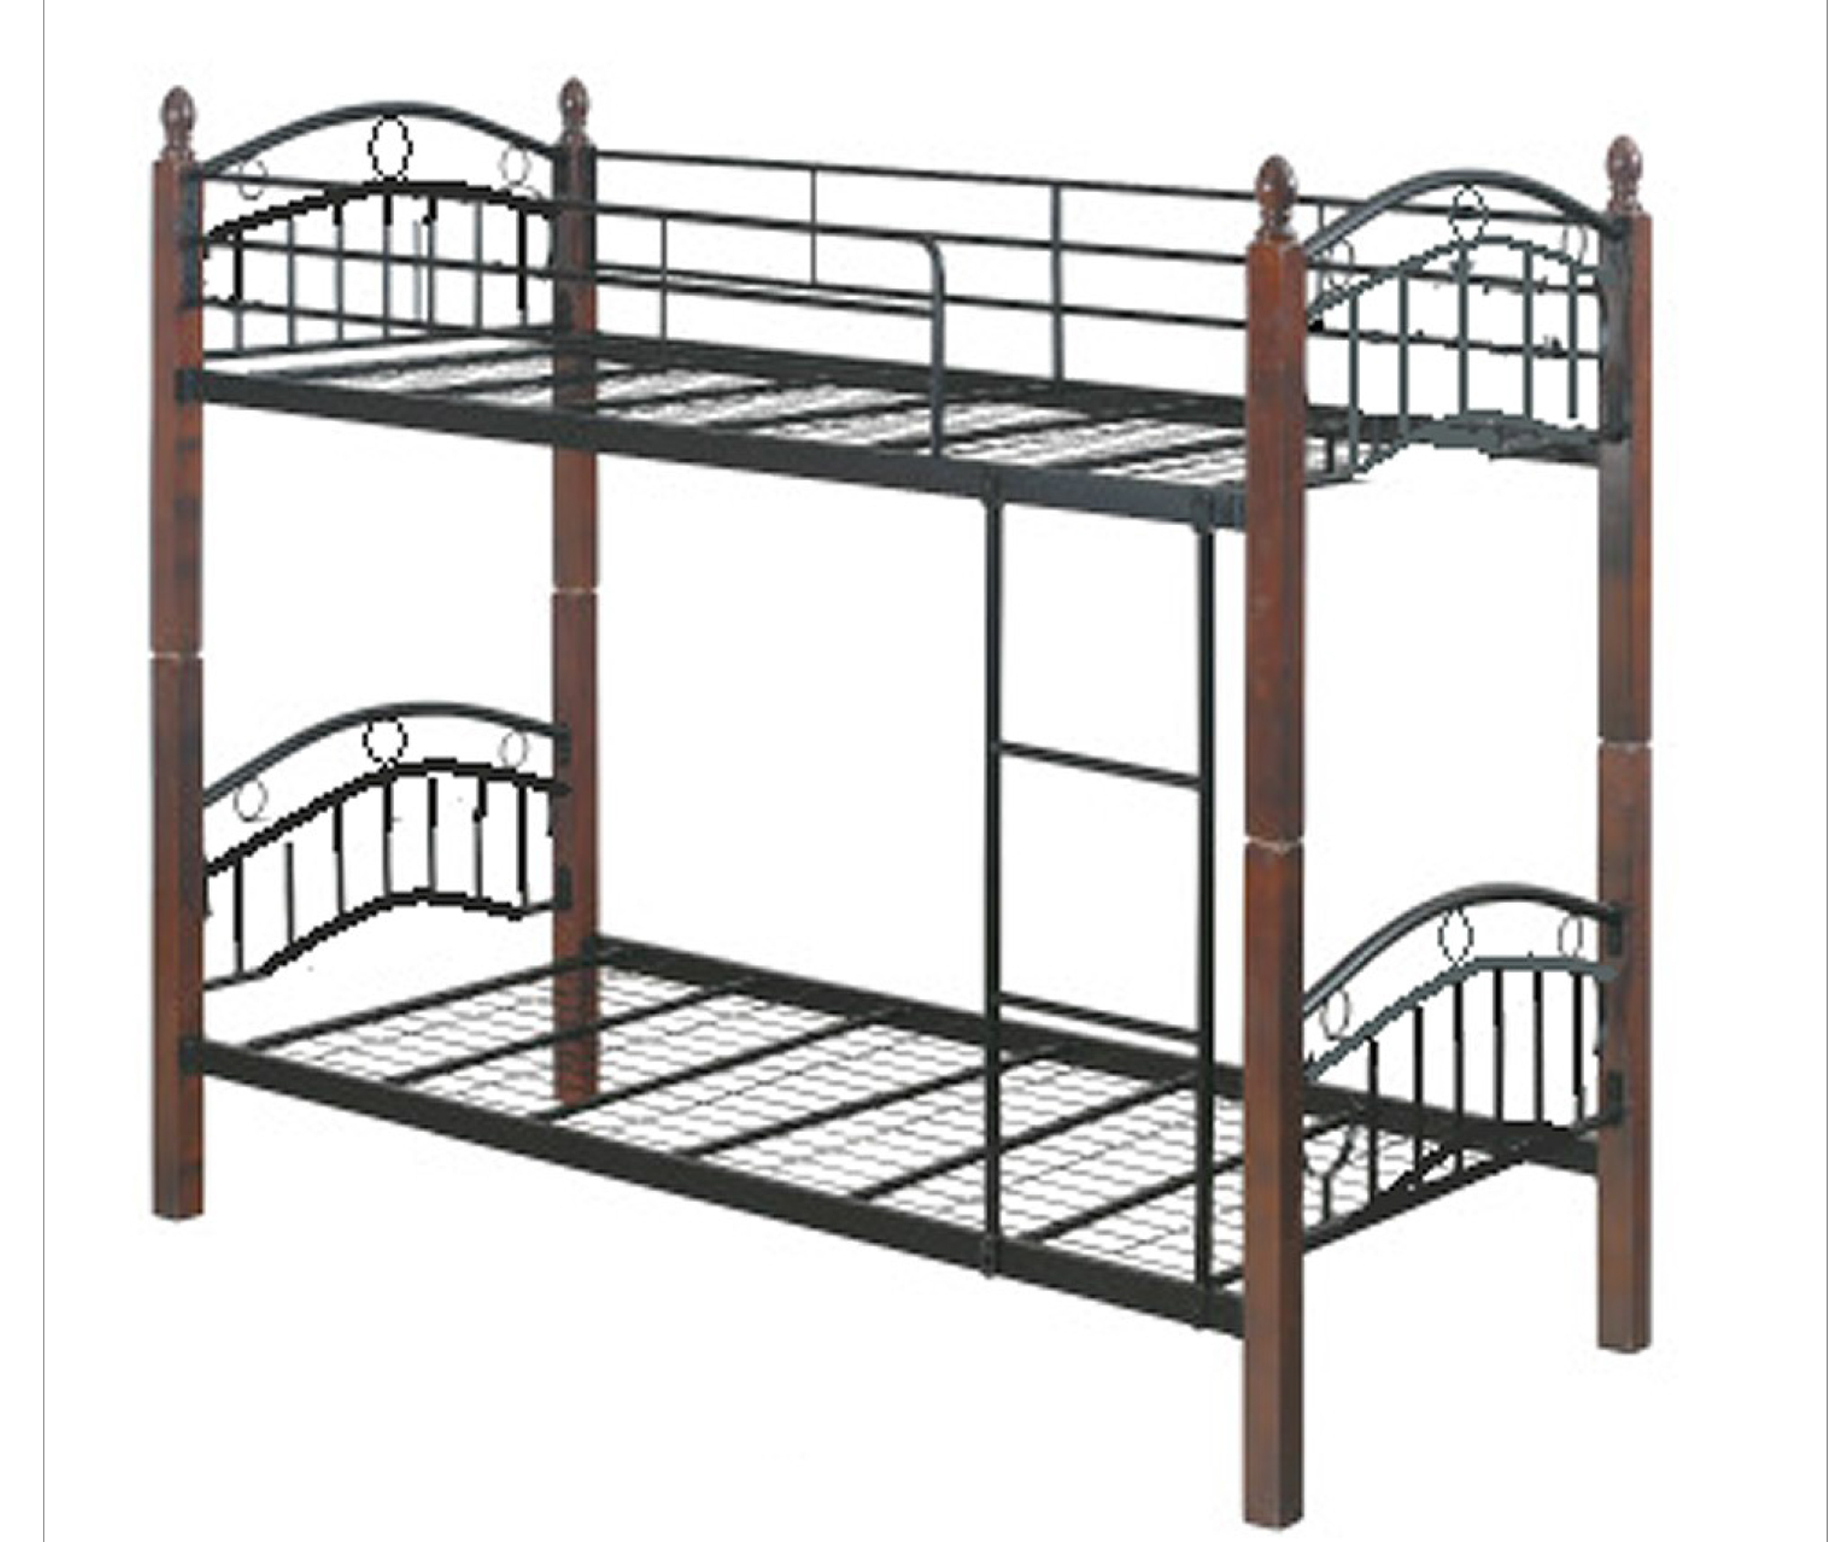 Dew foam double deck bed frame with 4 x 36 x 75 mattress for Double deck bed images